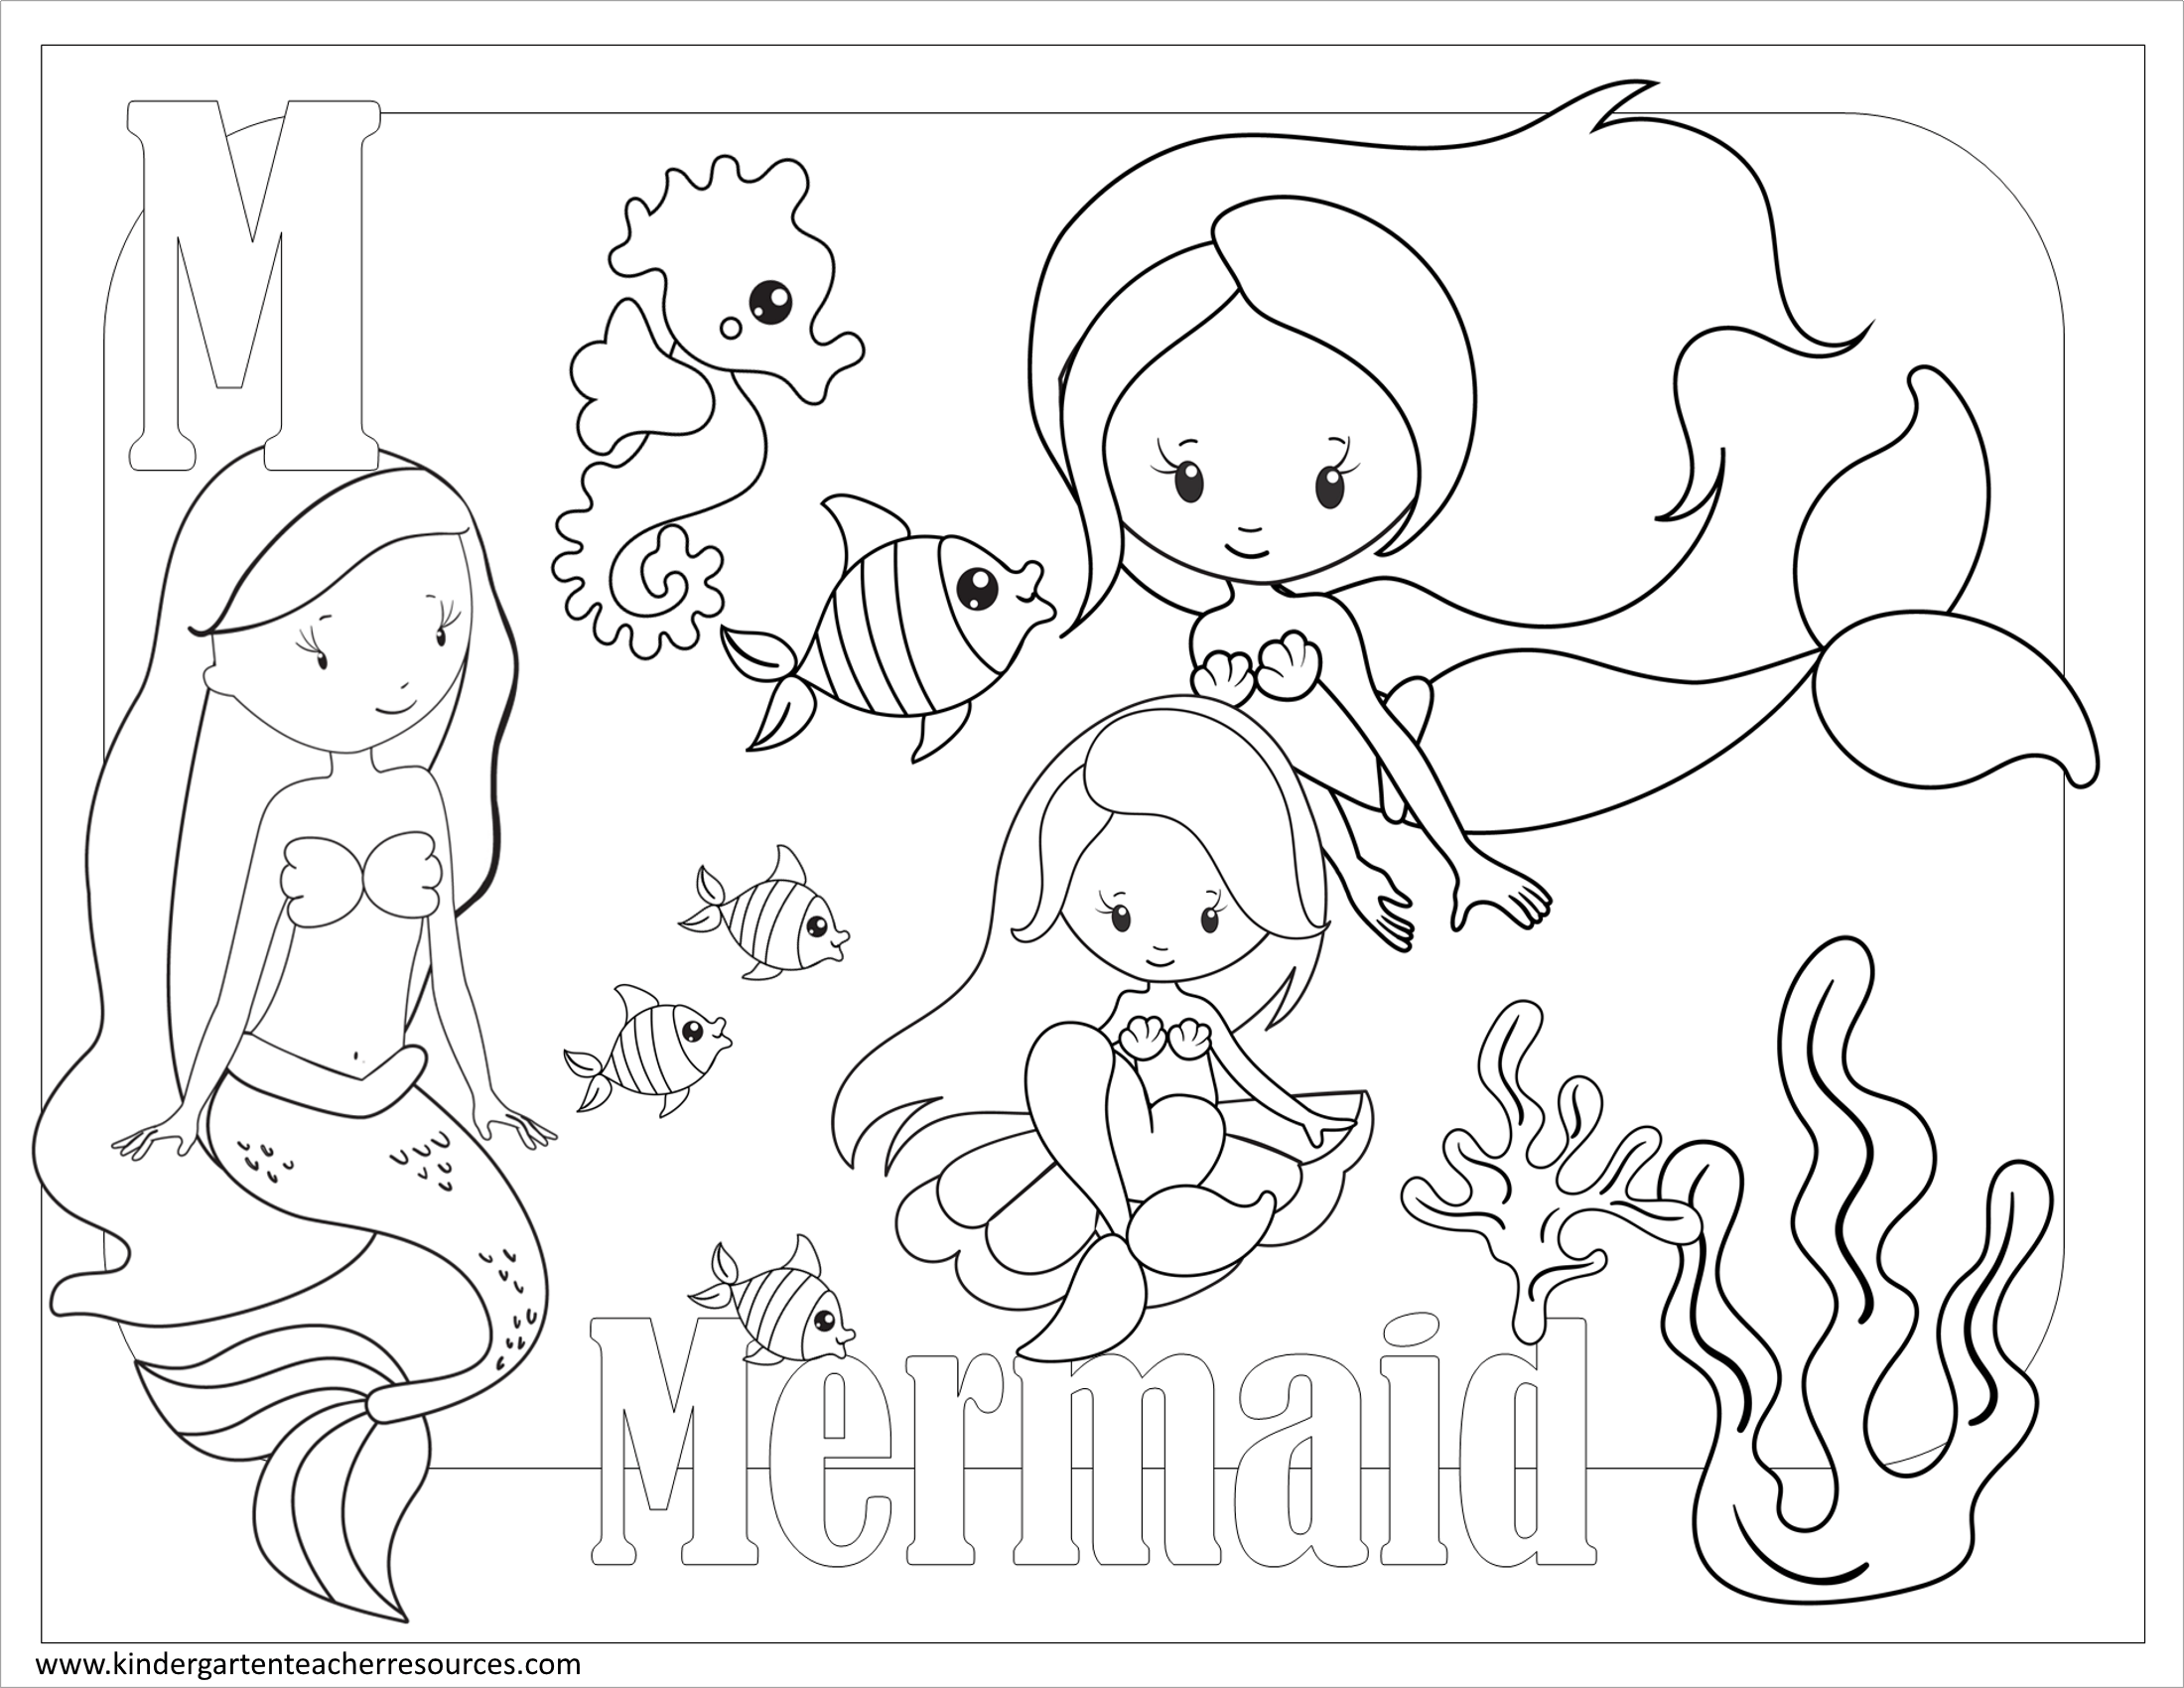 Free Printable Coloring Pages For Kindergarten